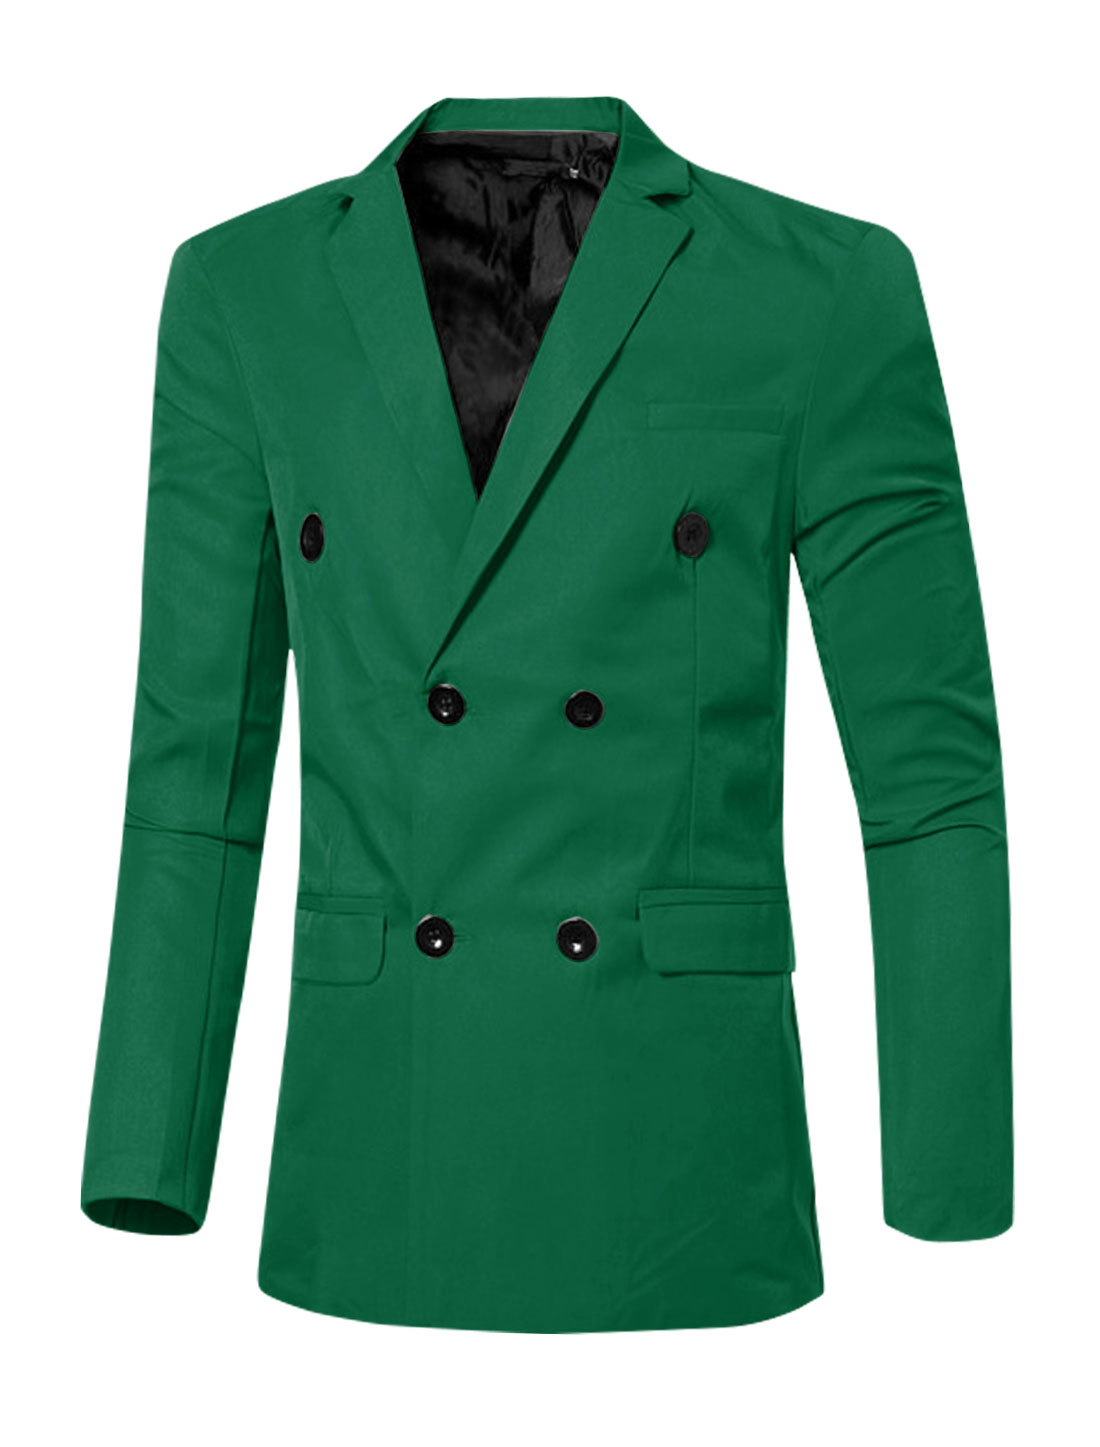 Men Notched Lapel Flap Pockets Double Breasted Blazer Green M